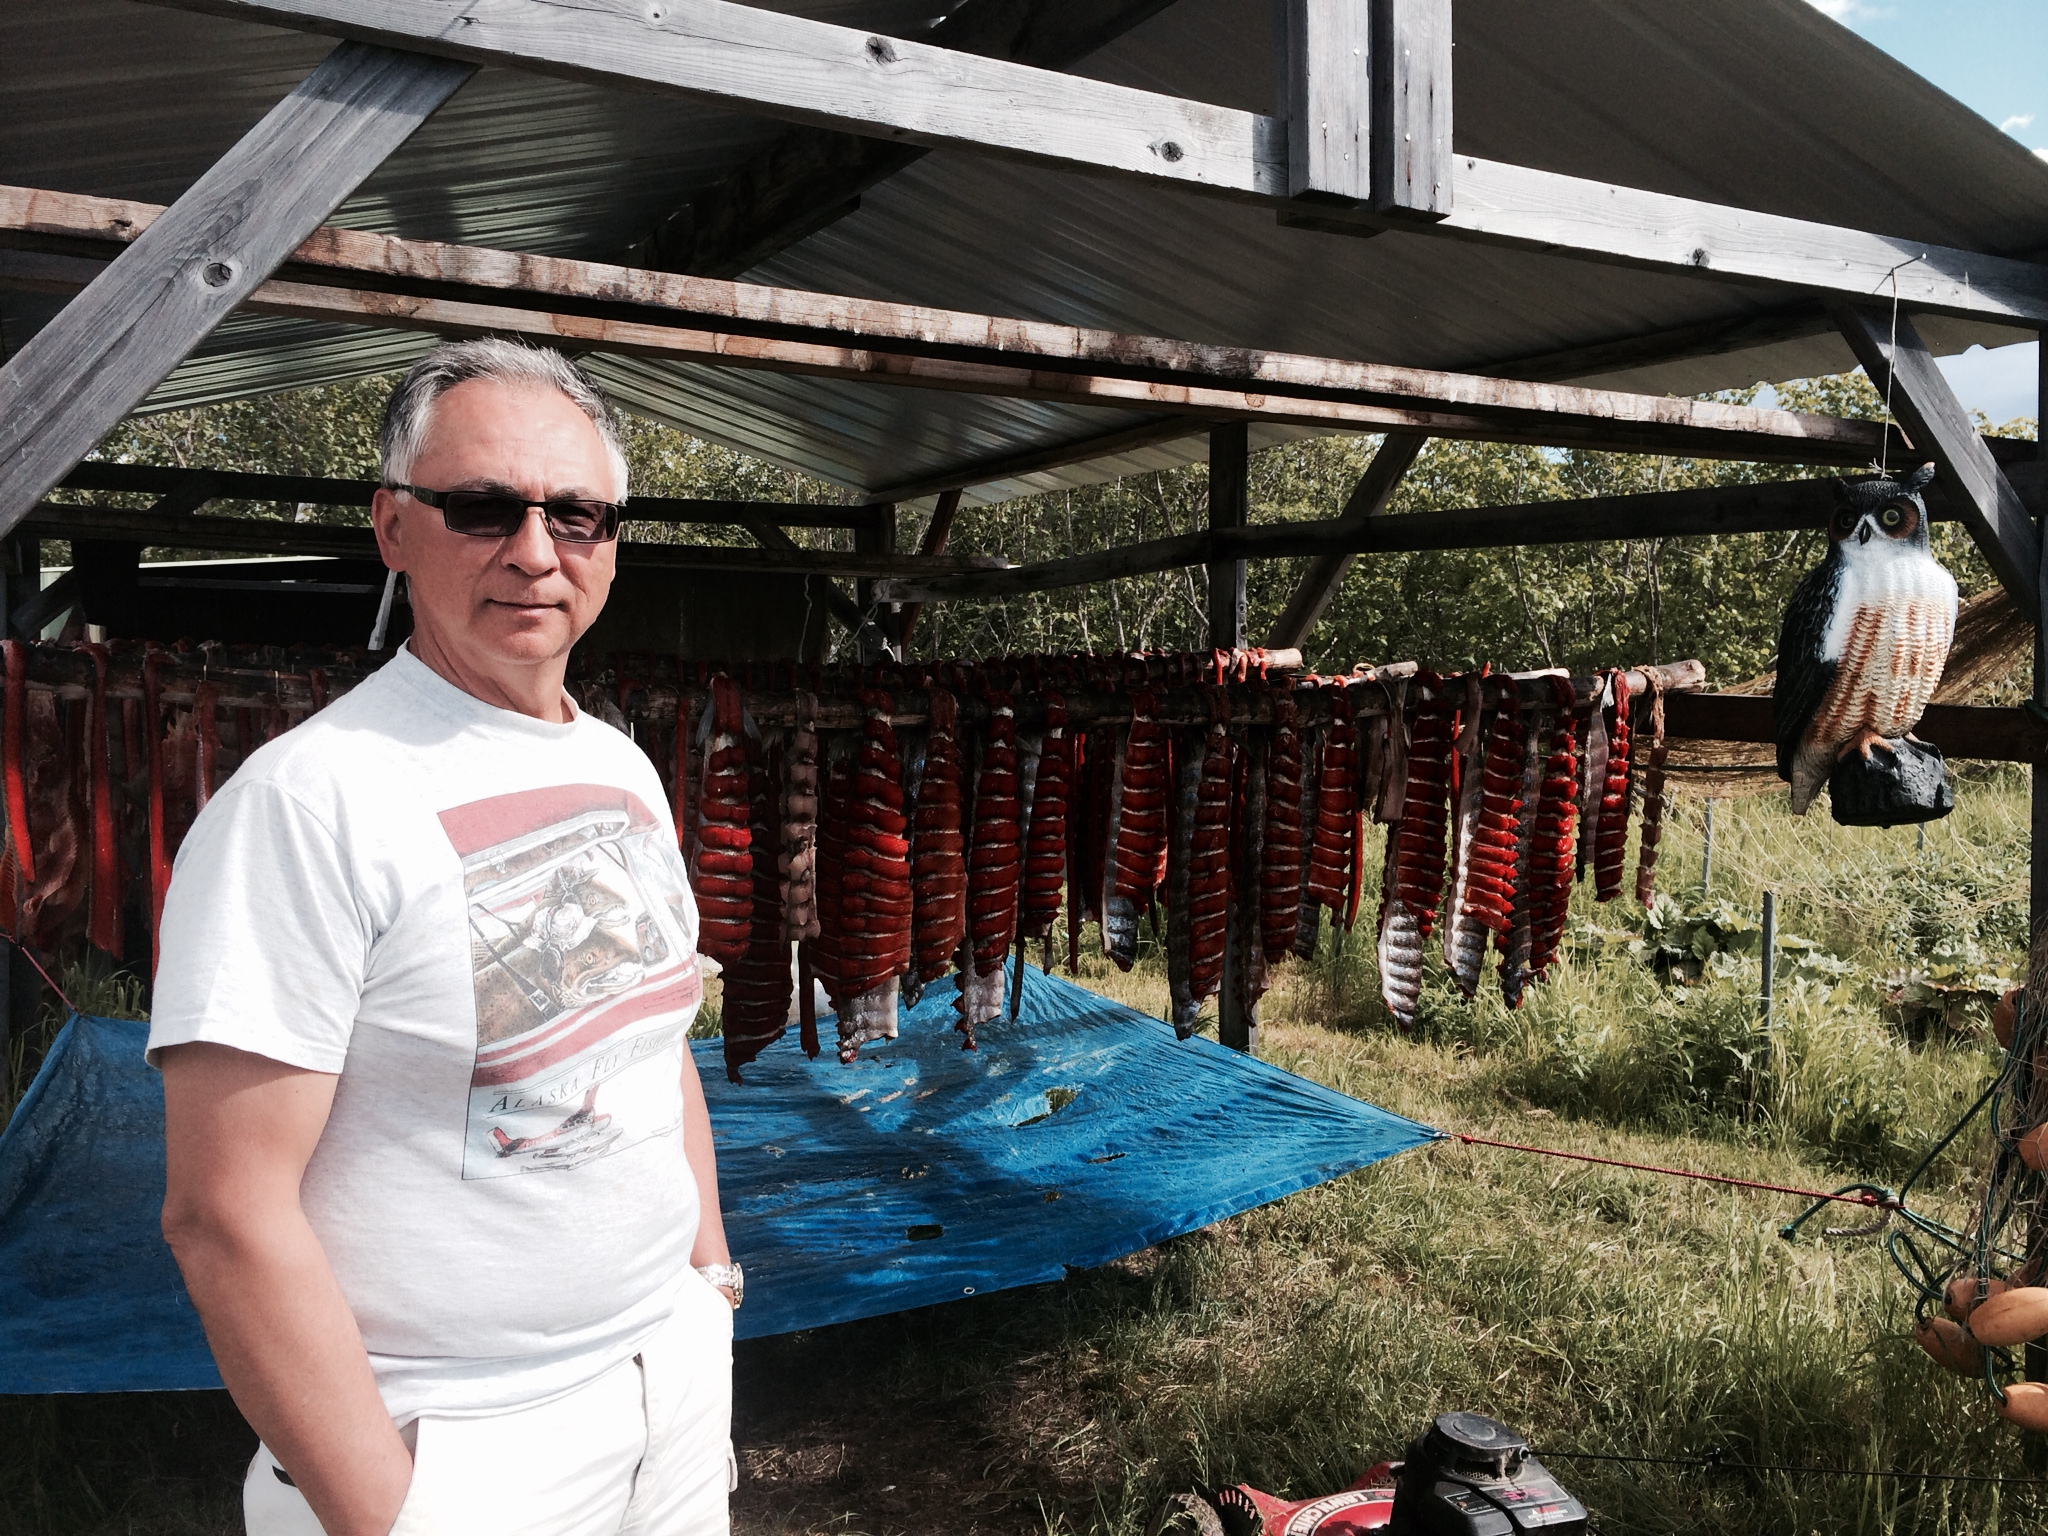 Arvin Dull, of Bethel, with his drying salmon at his fish camp in Oscarville Slough. (Photo by Daysha Eaton/KYUK)